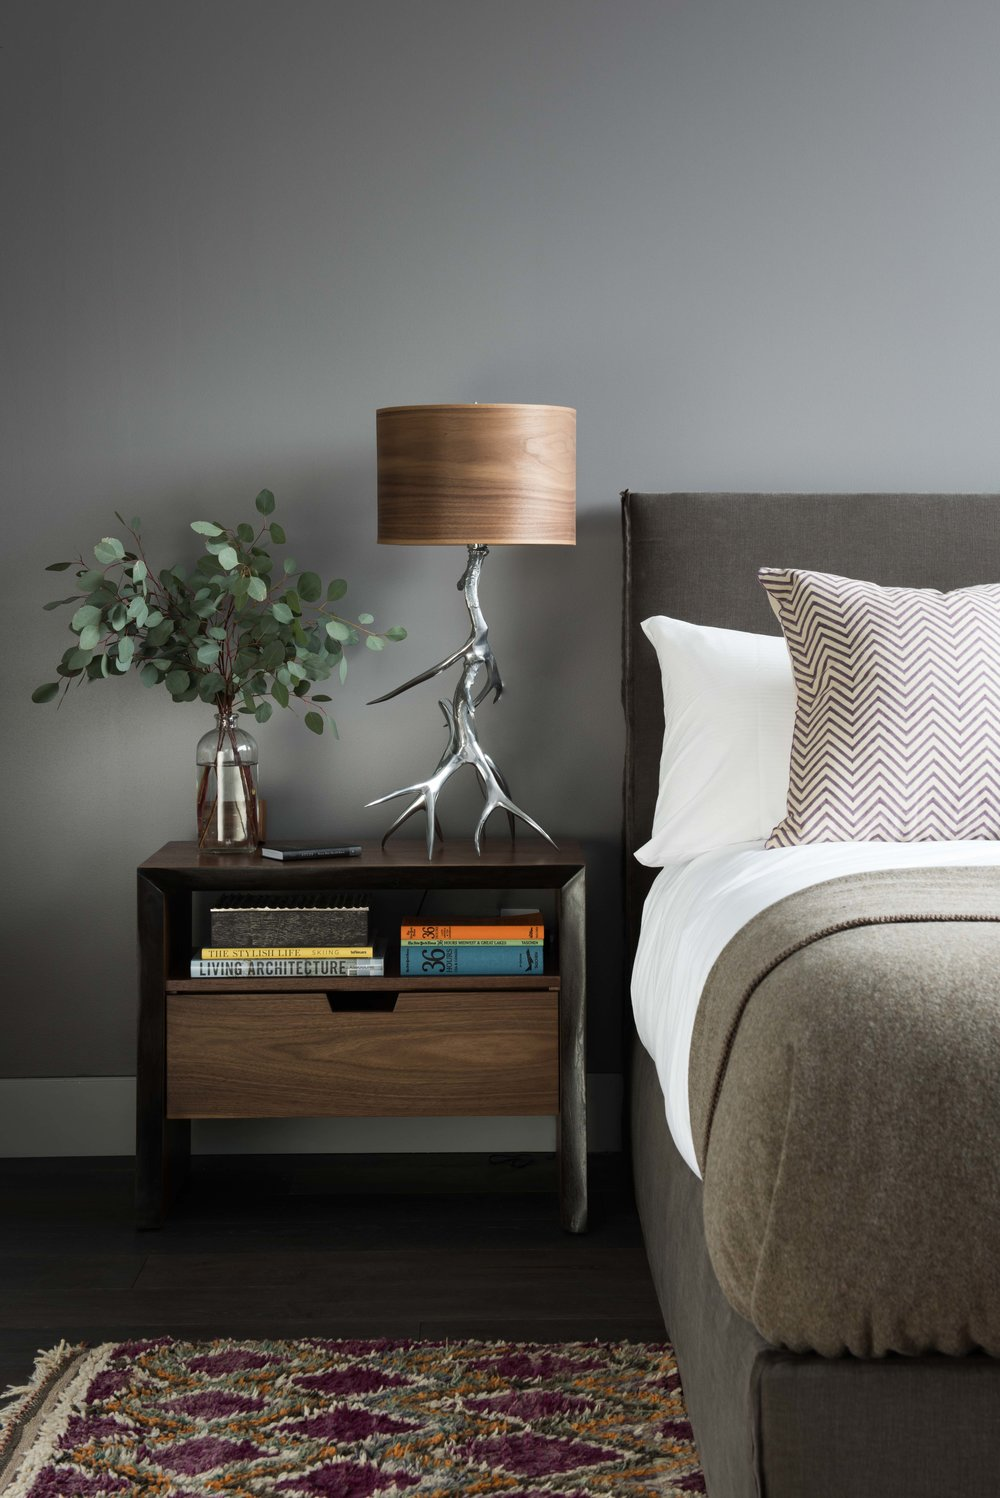 Classic and sophisticated!  The bedside table lamp & the rug are my favorites in this guest bedroom.